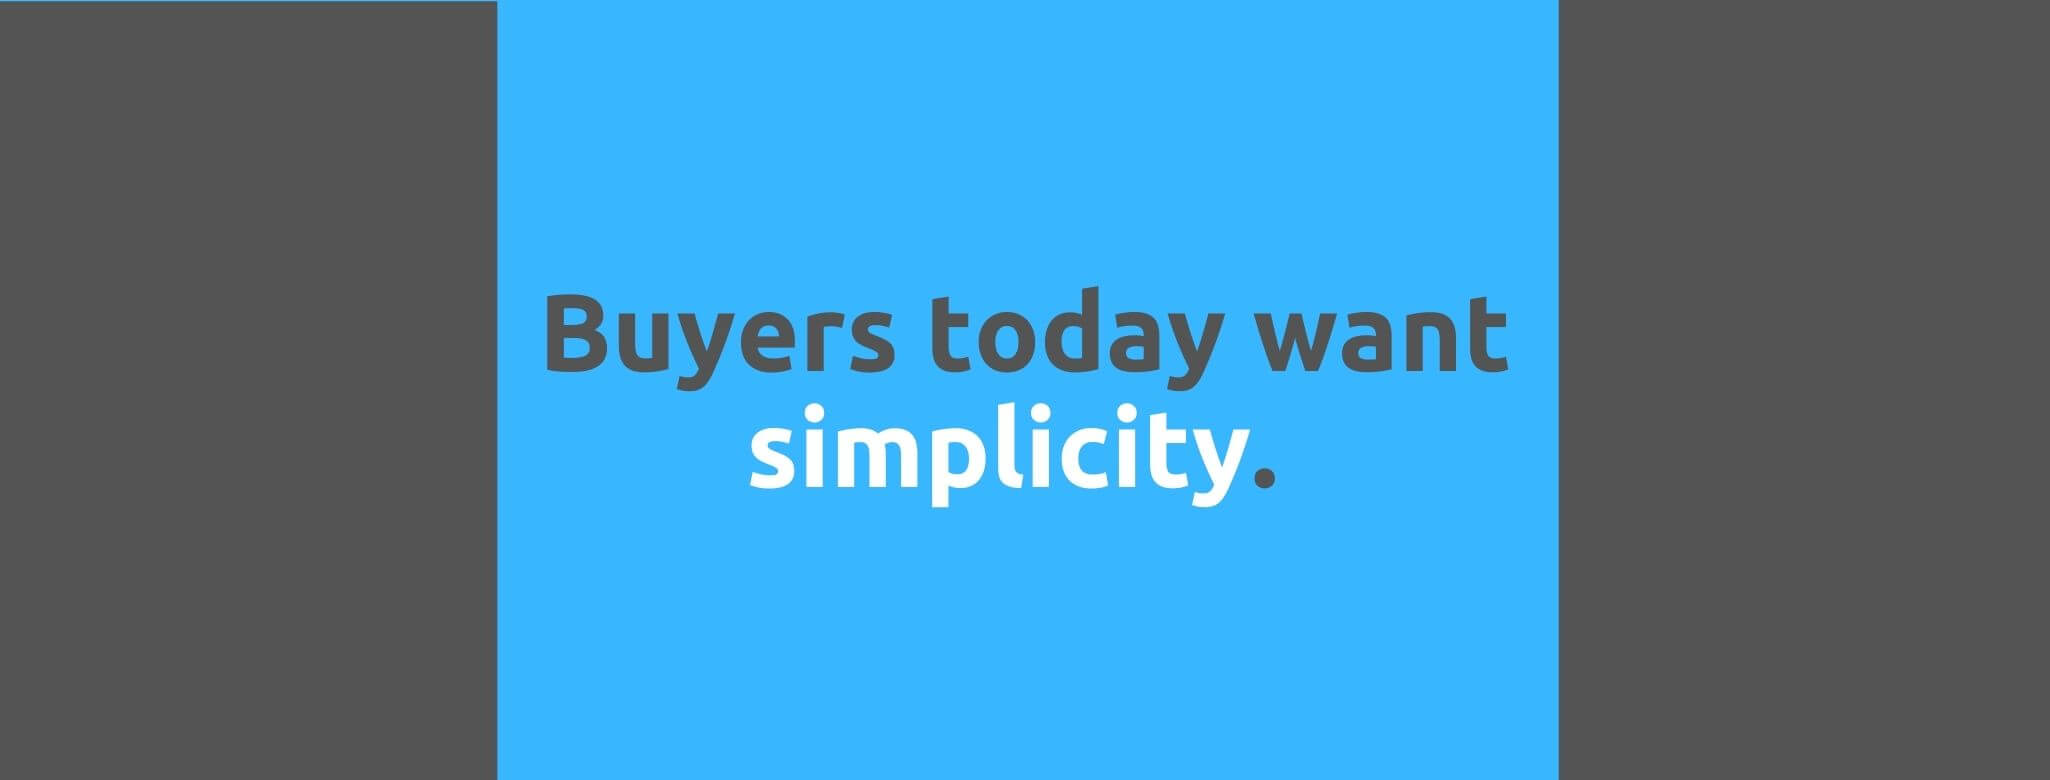 Buyers today want simplicity - Customer Expectations - Replyco Helpdesk Software for eCommerce